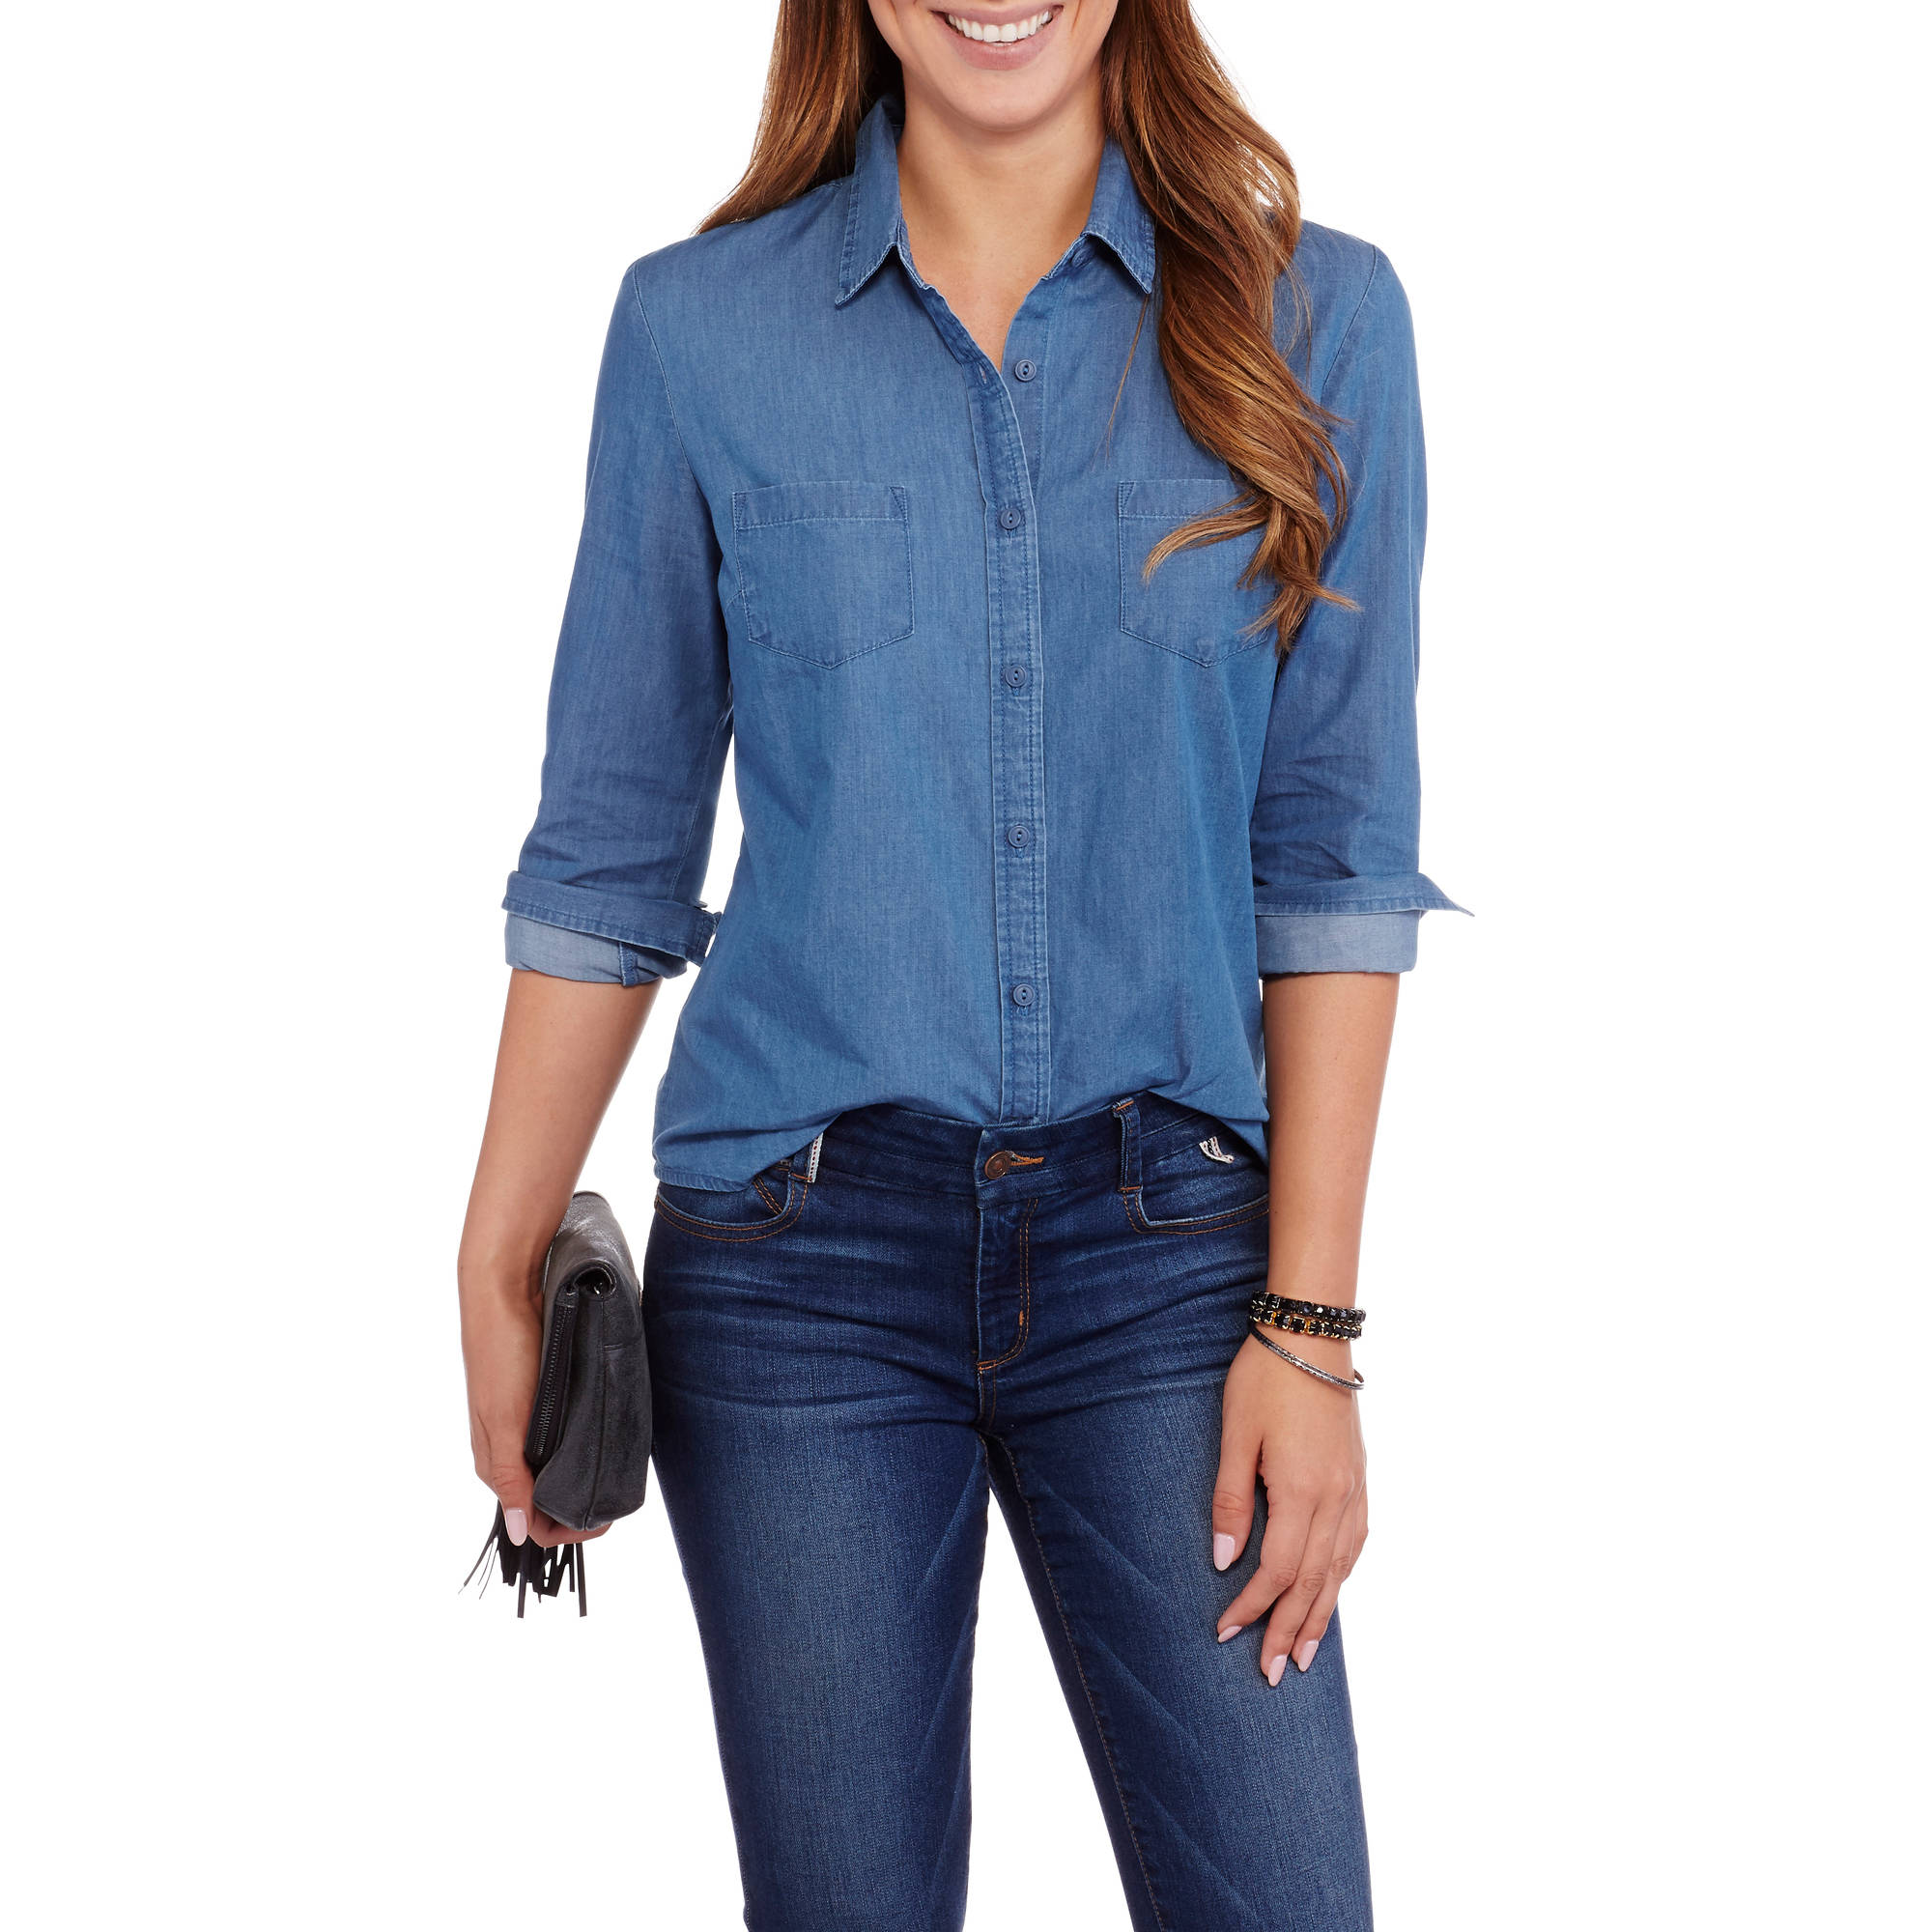 Flaunt your femininity in ruffled women's denim shirts. Glam up a fun party look by pairing of these shirts with a sequined vest and a matching denim skirt. Adding a multi-colored braided belt, stilettos and an oversized shoulder tote will add to that gorgeous look of you want to create.